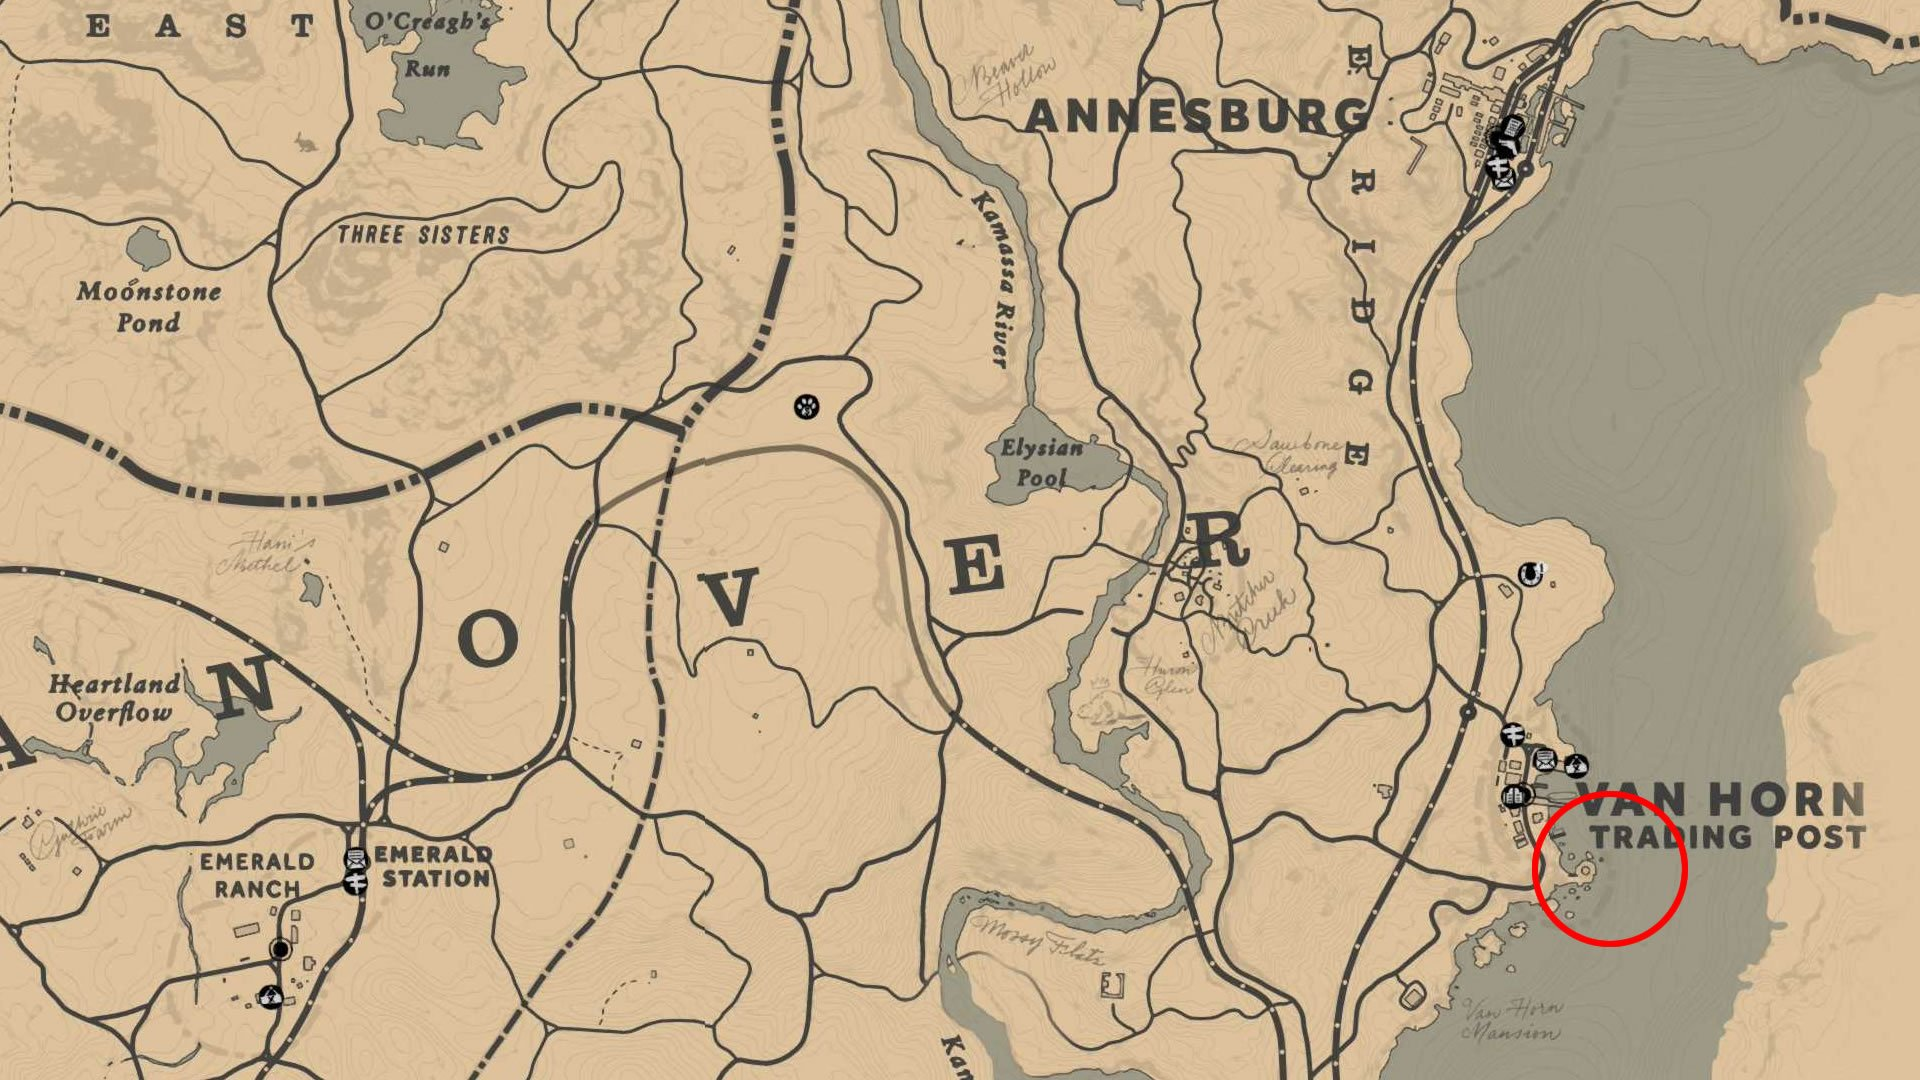 Location of the Legendary Muskie